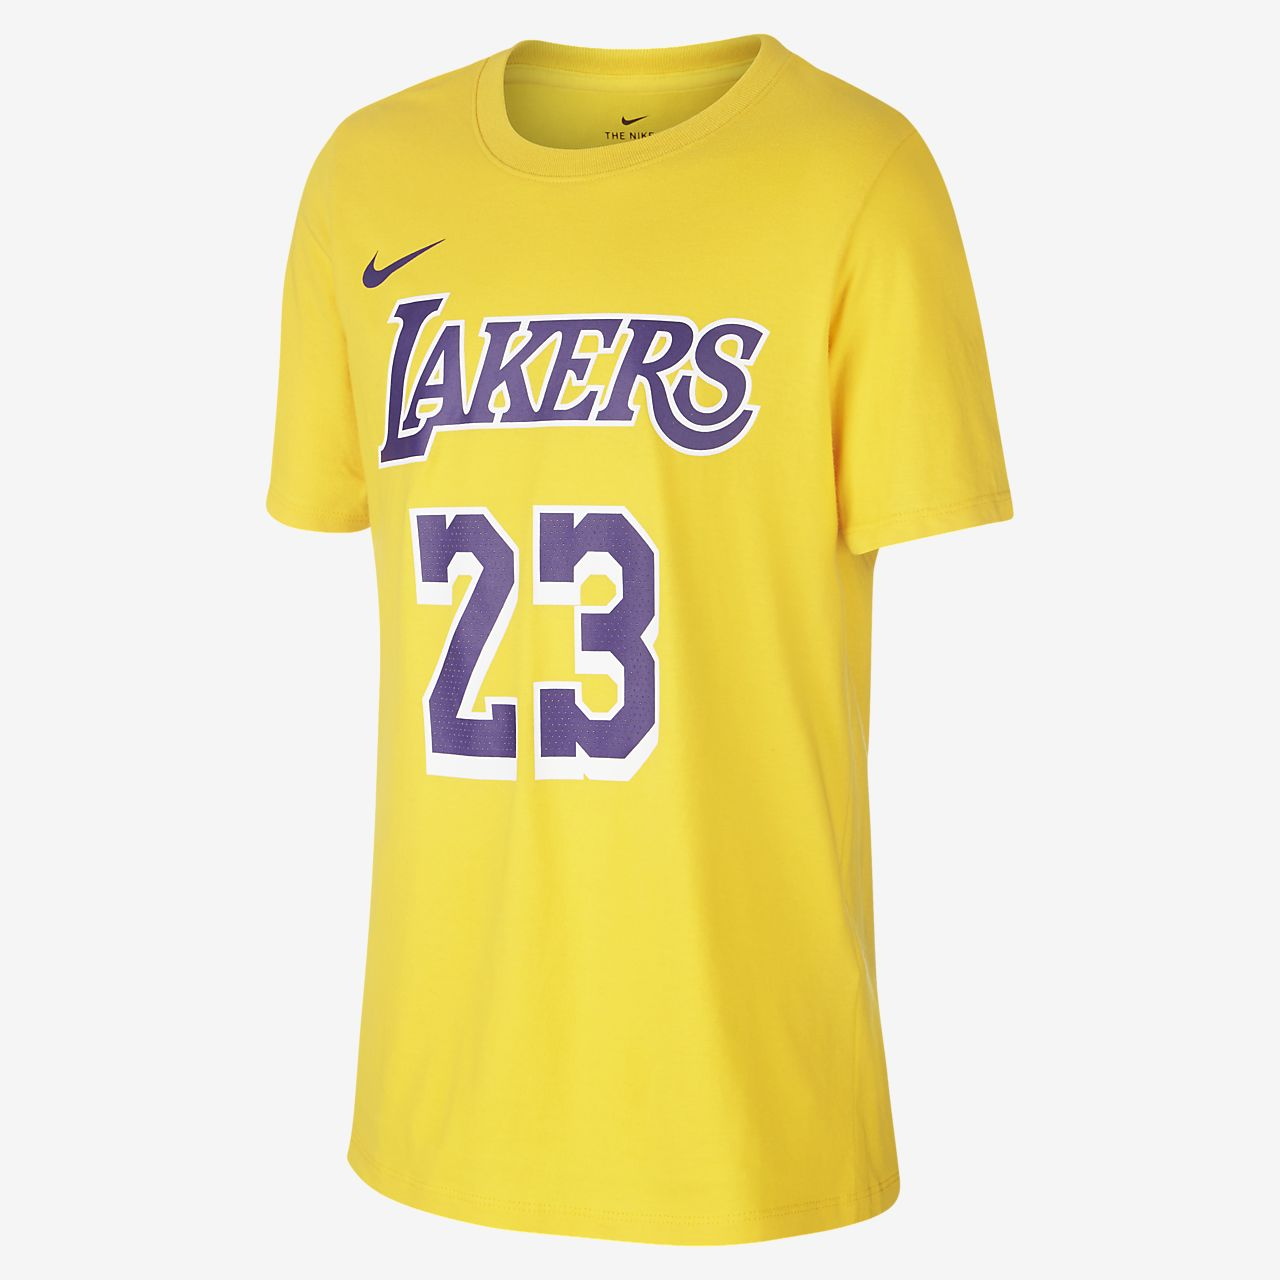 LeBron James Los Angeles Lakers Nike NBA-kindershirt